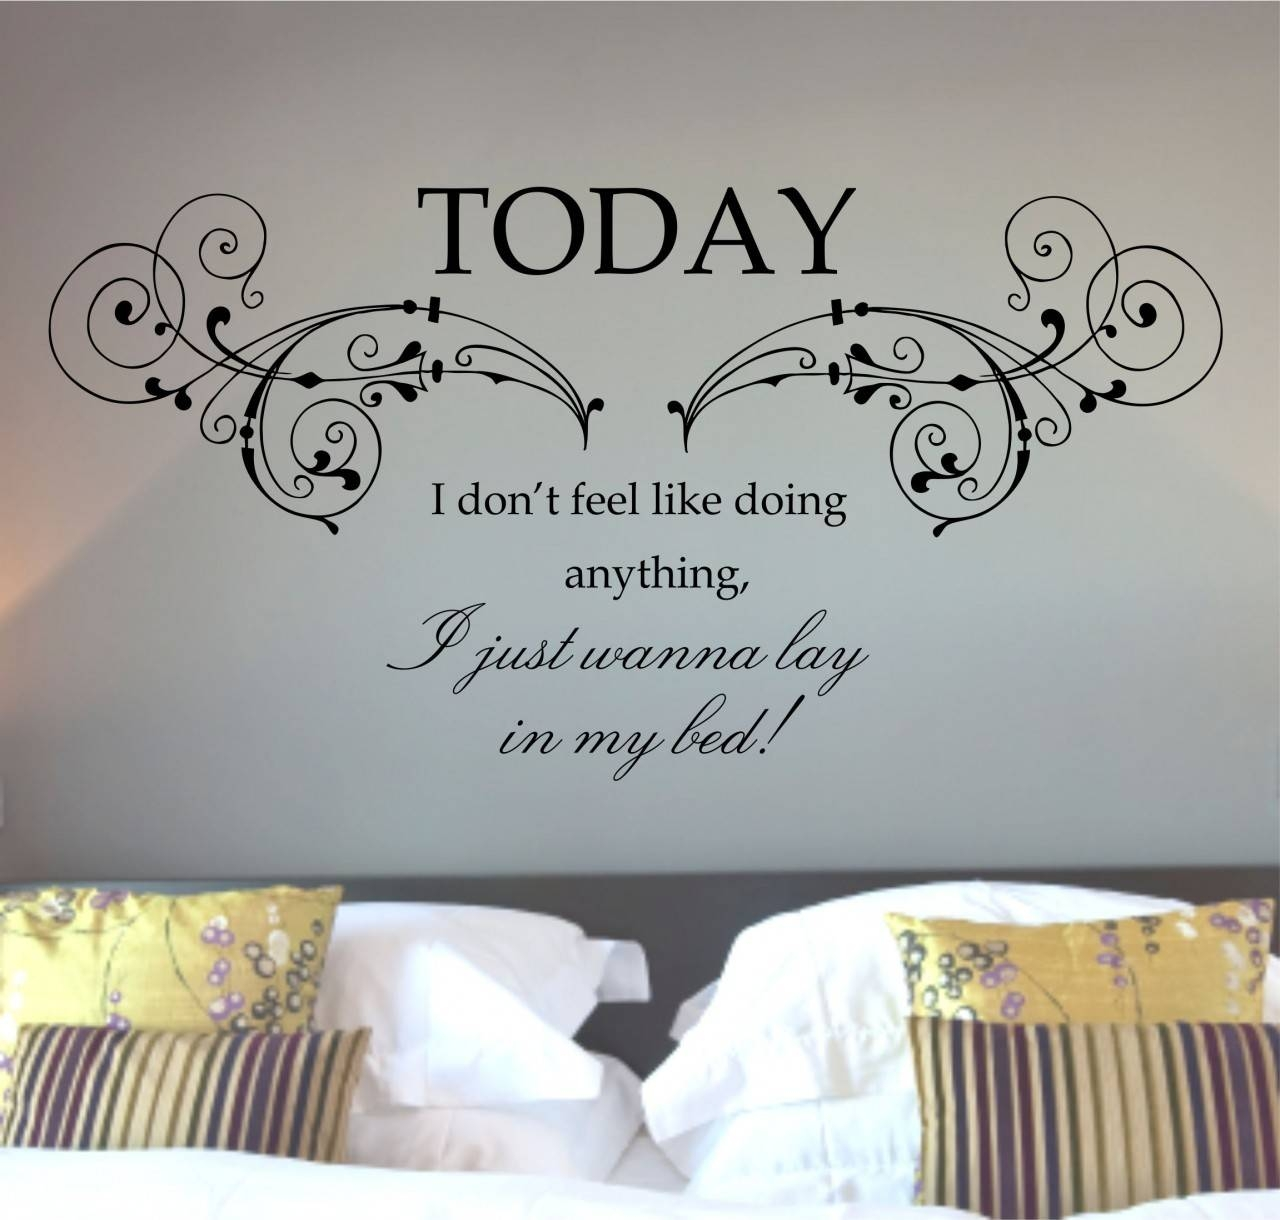 Bedroom : Exquisite Wall Art Decor Australia Amazing Wall Art Pertaining To Most Current Bedroom Wall Art (View 7 of 25)